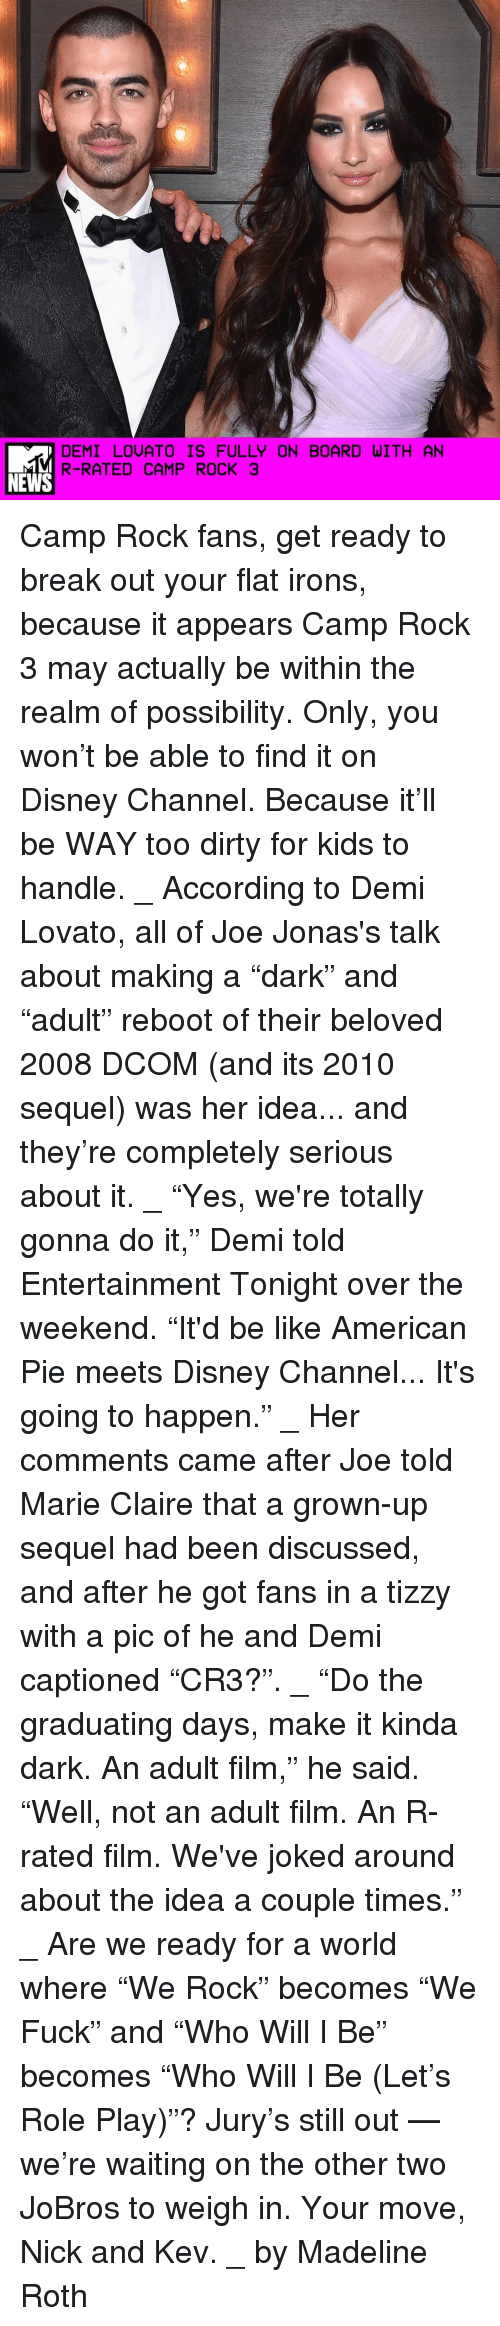 "Demi Lovato, Memes, and Disney Channel: DEMI LOUATO IS FULLY ON BOARD WITH AN  R-RATED CAMP ROCK 3  NEWS Camp Rock fans, get ready to break out your flat irons, because it appears Camp Rock 3 may actually be within the realm of possibility. Only, you won't be able to find it on Disney Channel. Because it'll be WAY too dirty for kids to handle. _ According to Demi Lovato, all of Joe Jonas's talk about making a ""dark"" and ""adult"" reboot of their beloved 2008 DCOM (and its 2010 sequel) was her idea... and they're completely serious about it. _ ""Yes, we're totally gonna do it,"" Demi told Entertainment Tonight over the weekend. ""It'd be like American Pie meets Disney Channel... It's going to happen."" _ Her comments came after Joe told Marie Claire that a grown-up sequel had been discussed, and after he got fans in a tizzy with a pic of he and Demi captioned ""CR3?"". _ ""Do the graduating days, make it kinda dark. An adult film,"" he said. ""Well, not an adult film. An R-rated film. We've joked around about the idea a couple times."" _ Are we ready for a world where ""We Rock"" becomes ""We Fuck"" and ""Who Will I Be"" becomes ""Who Will I Be (Let's Role Play)""? Jury's still out — we're waiting on the other two JoBros to weigh in. Your move, Nick and Kev. _ by Madeline Roth"